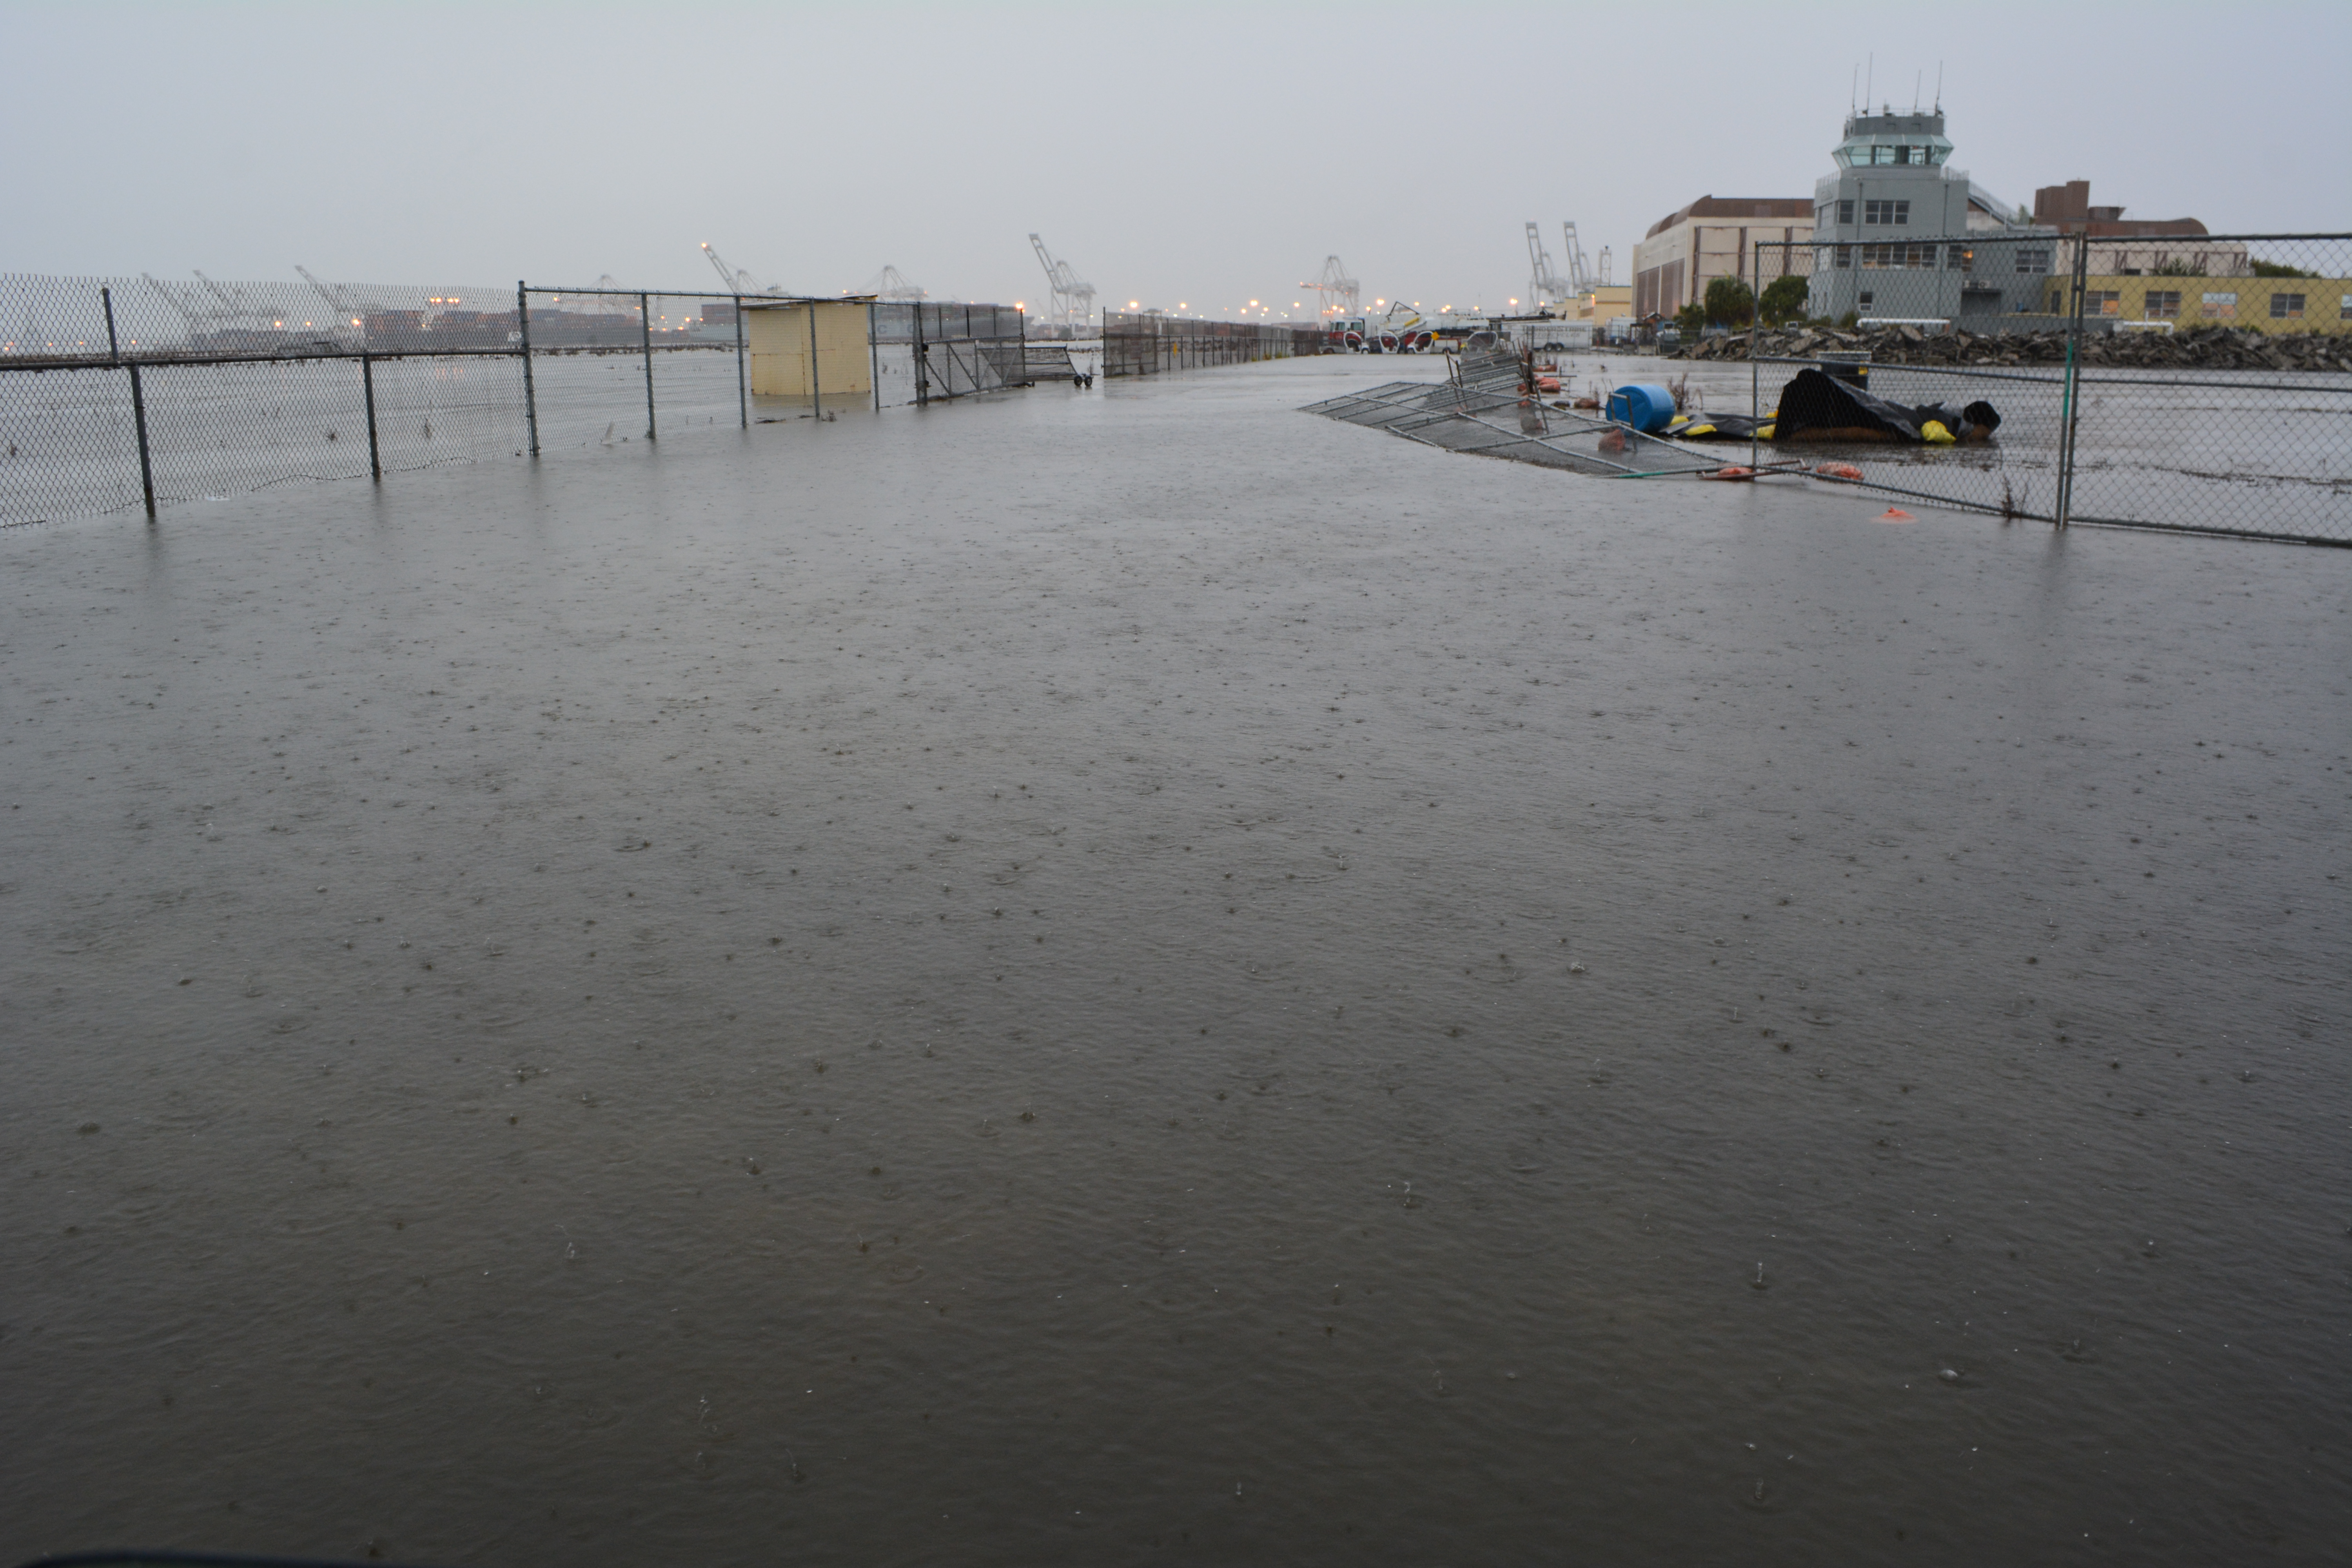 Flooding next to Building 25 (behind camera), looking toward Control Tower and Port of Oakland.  VA federal property on the left.